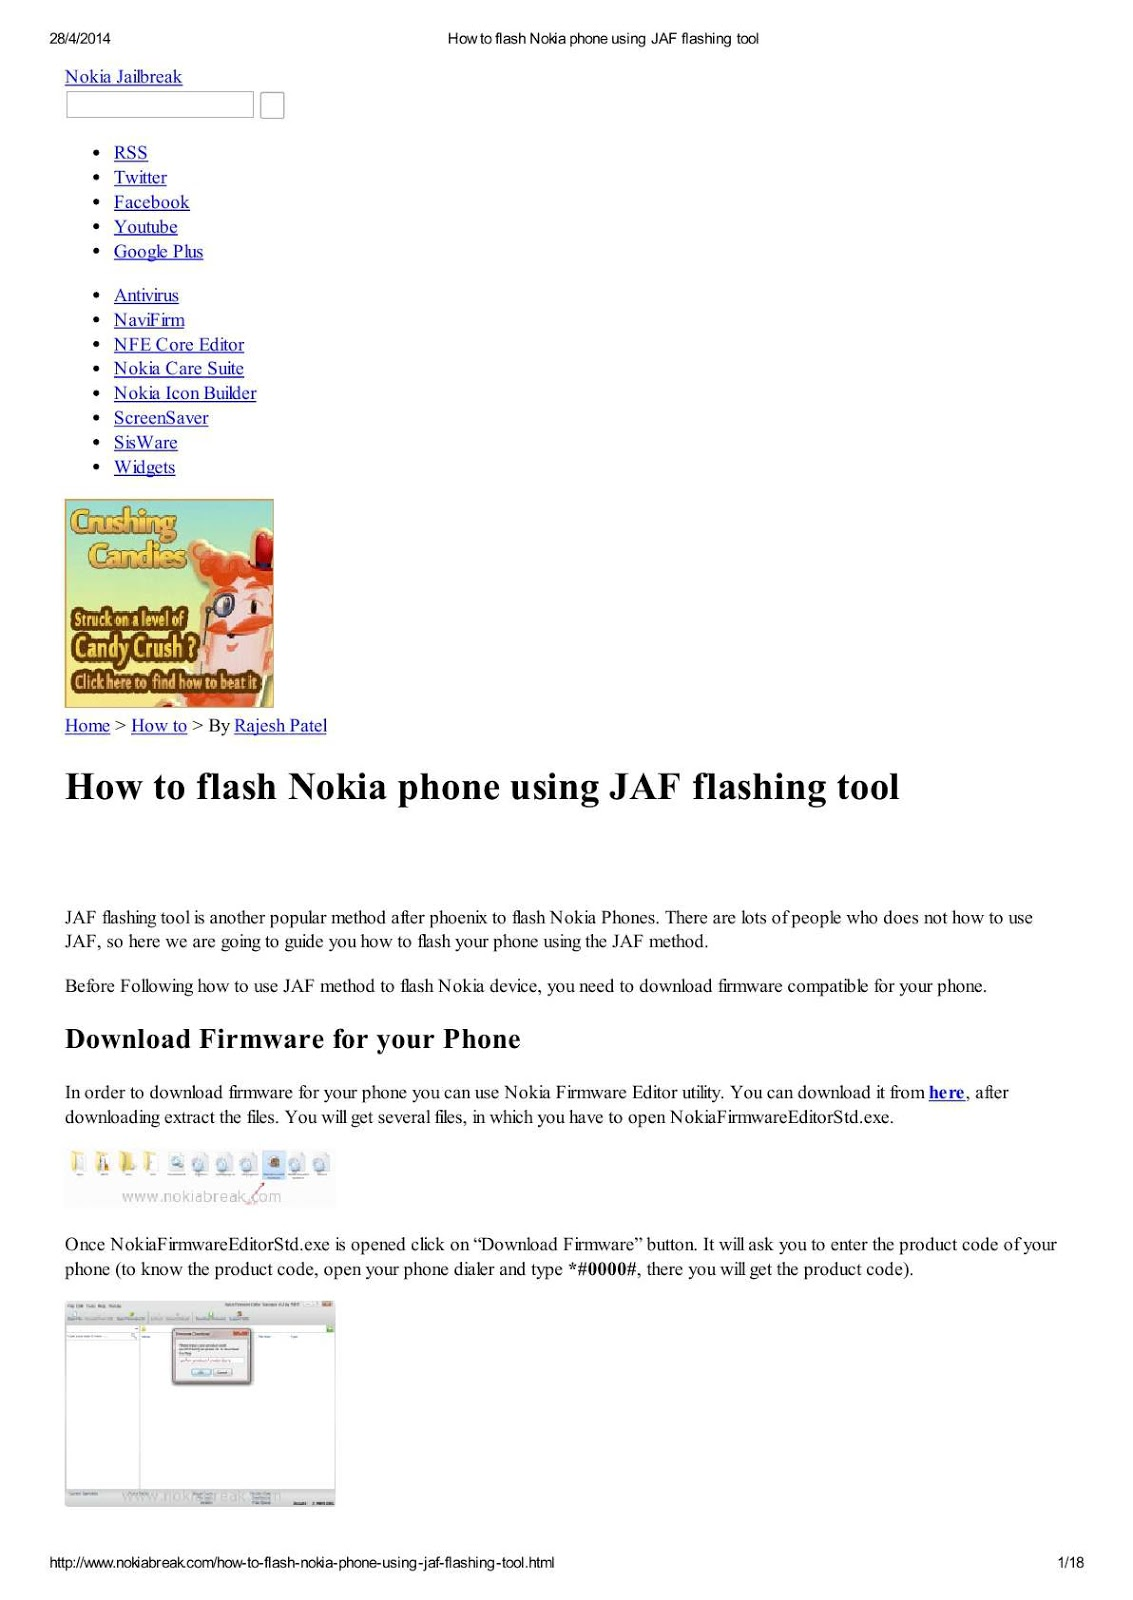 A nokia flasher free download